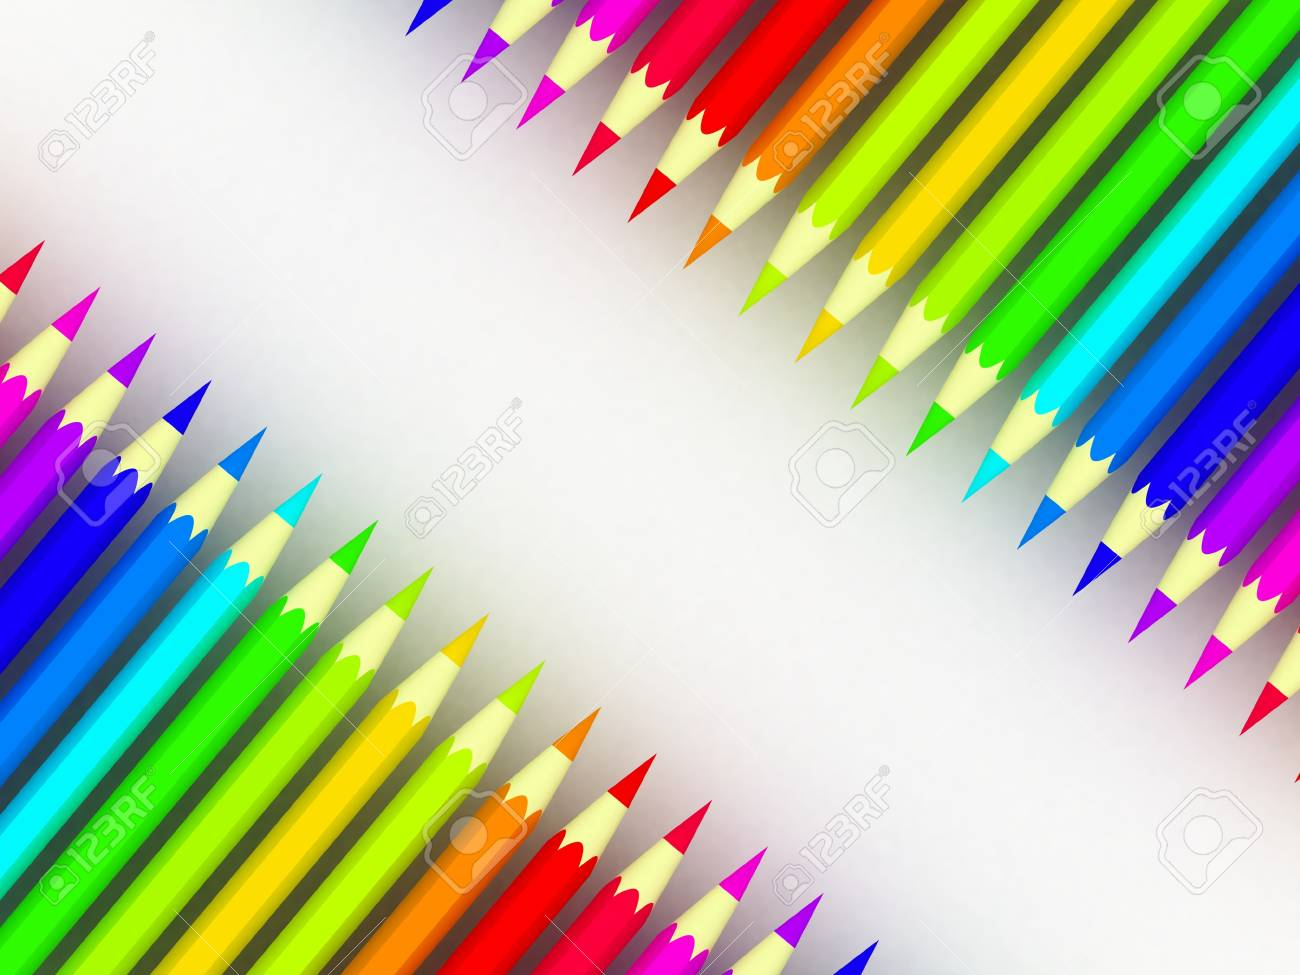 Many different colored pencils on white background Stock Photo - 17234504